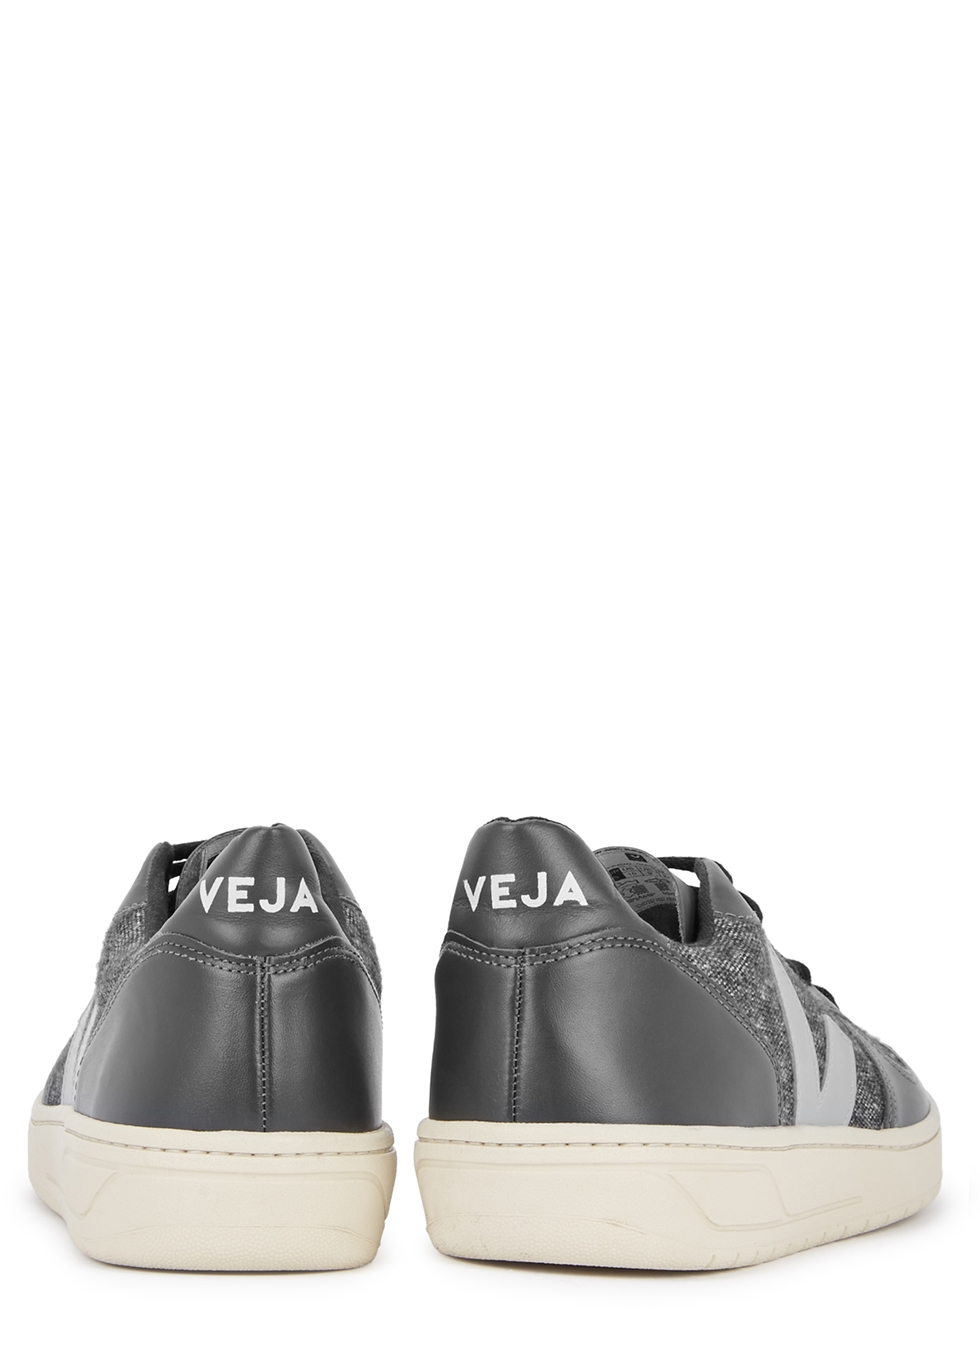 Grey flanel and leather trainers - Veja